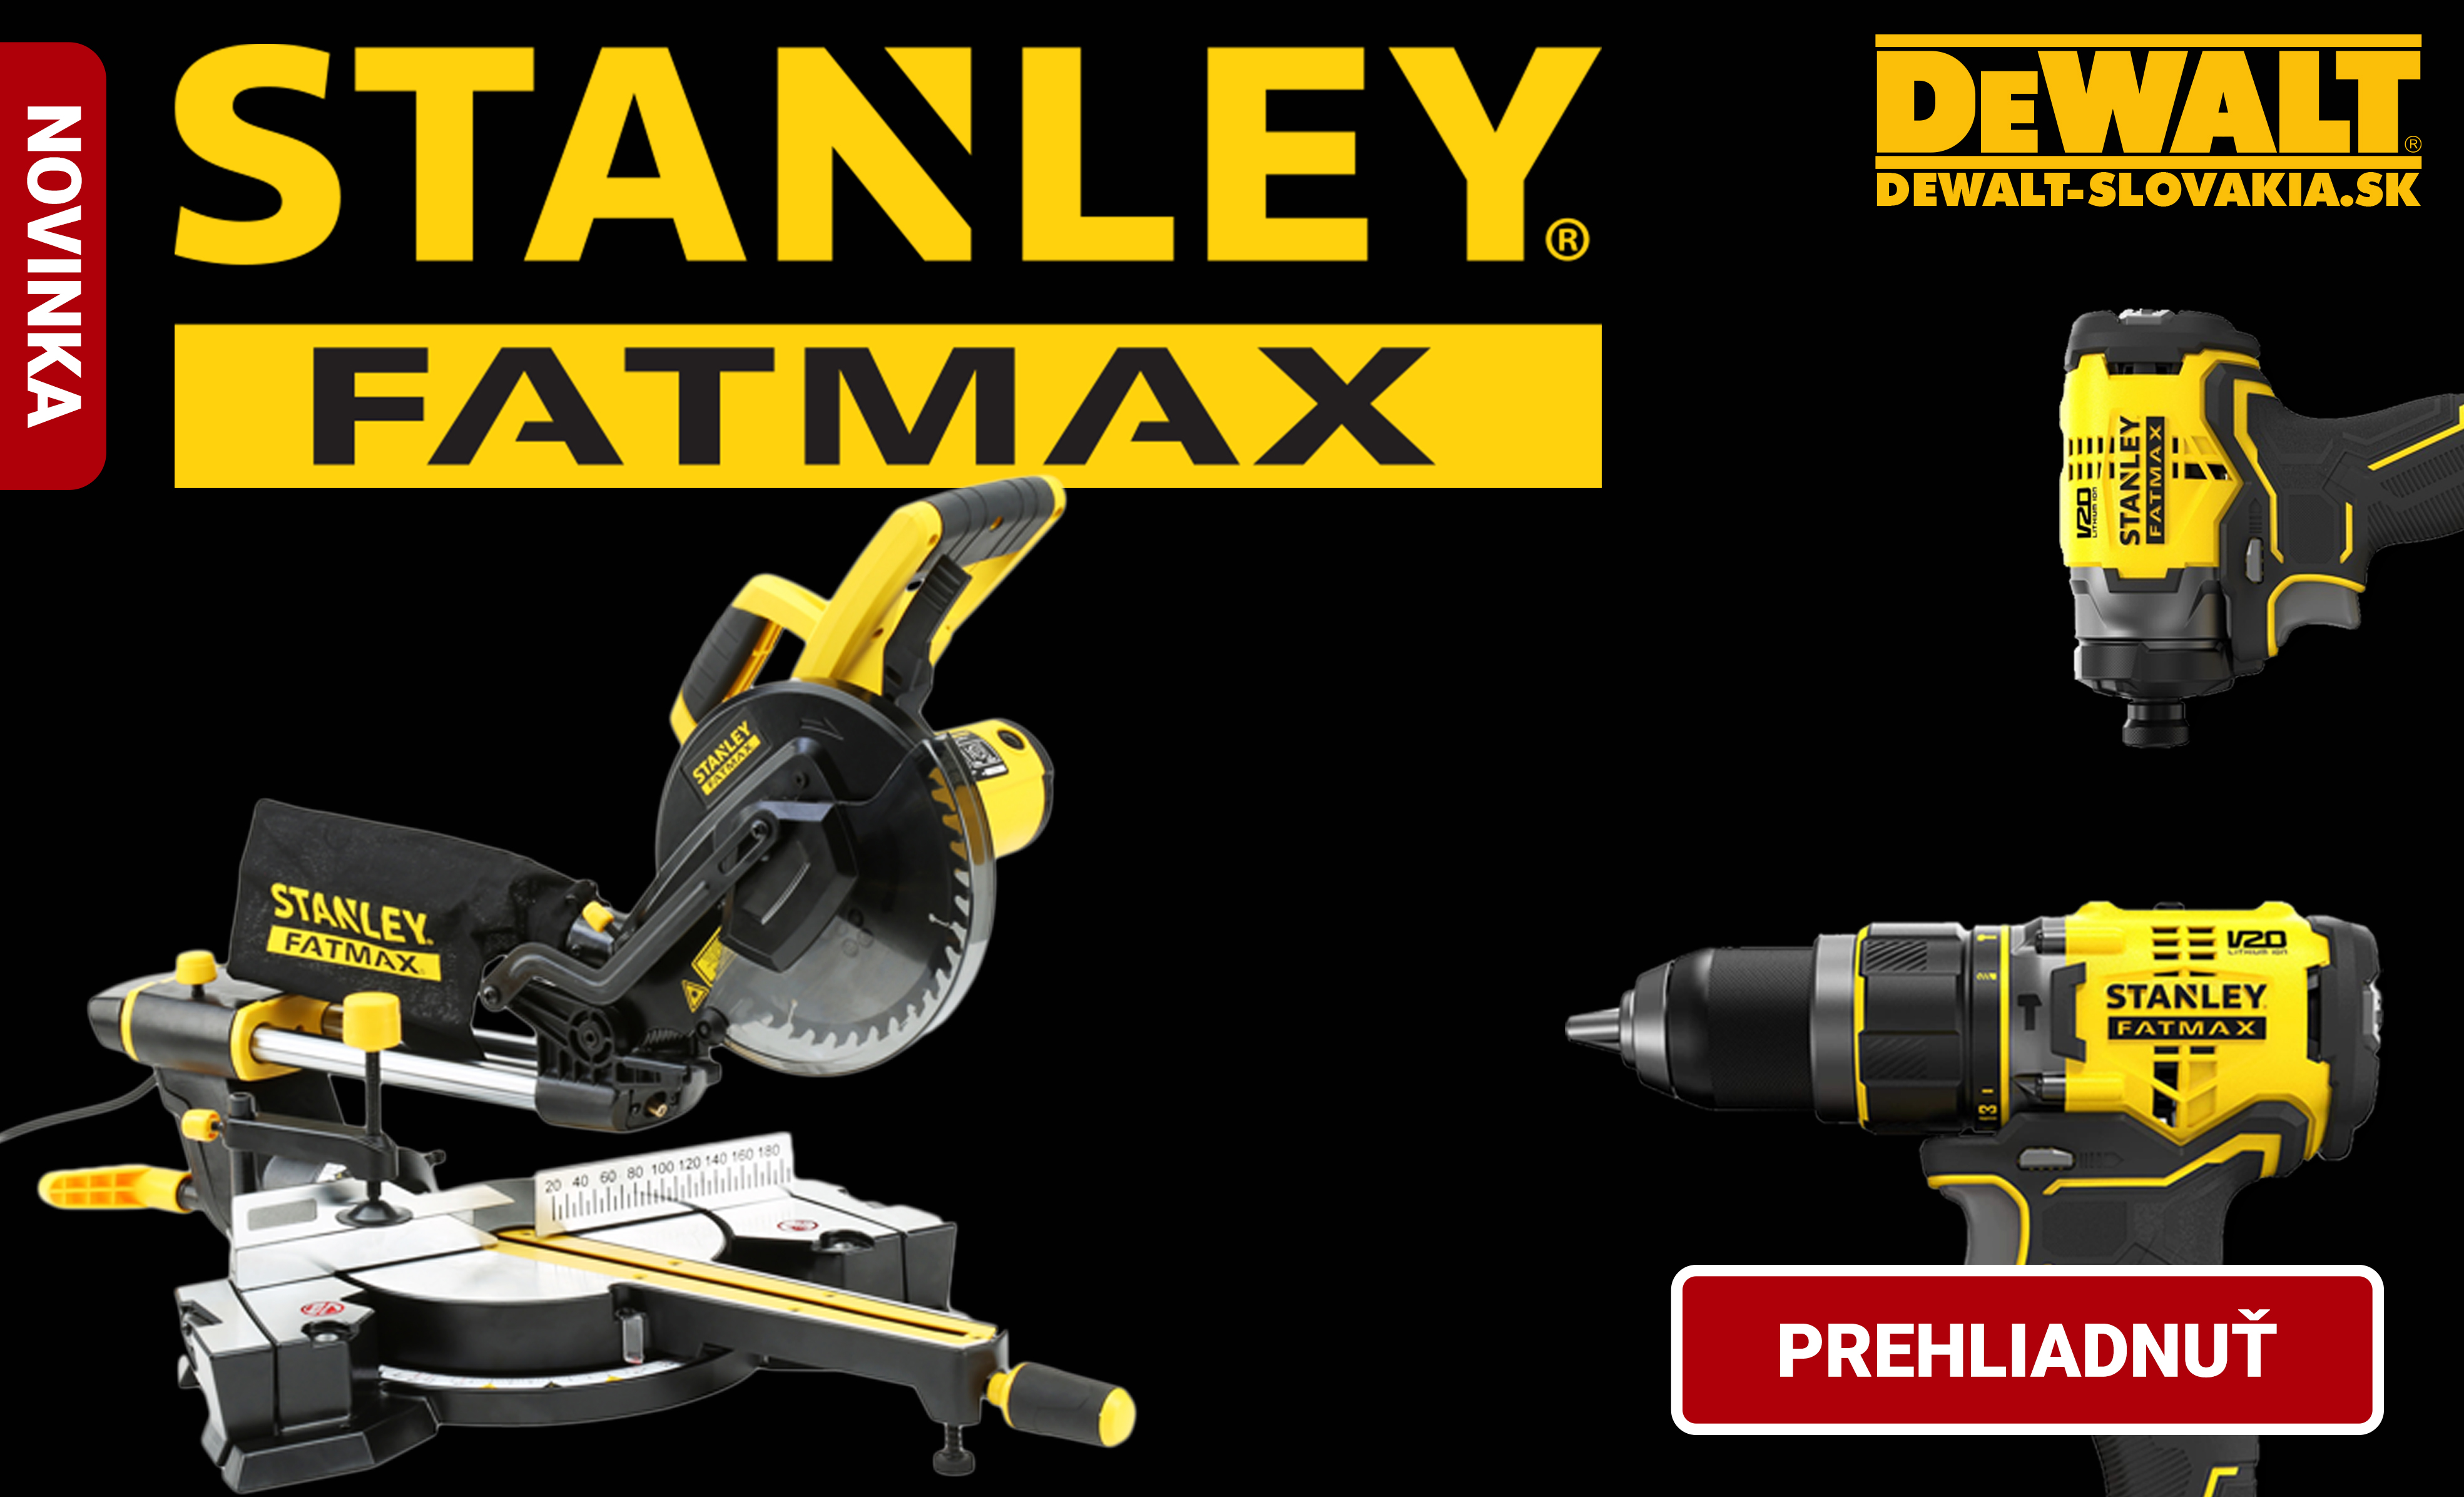 Stanely fatmax